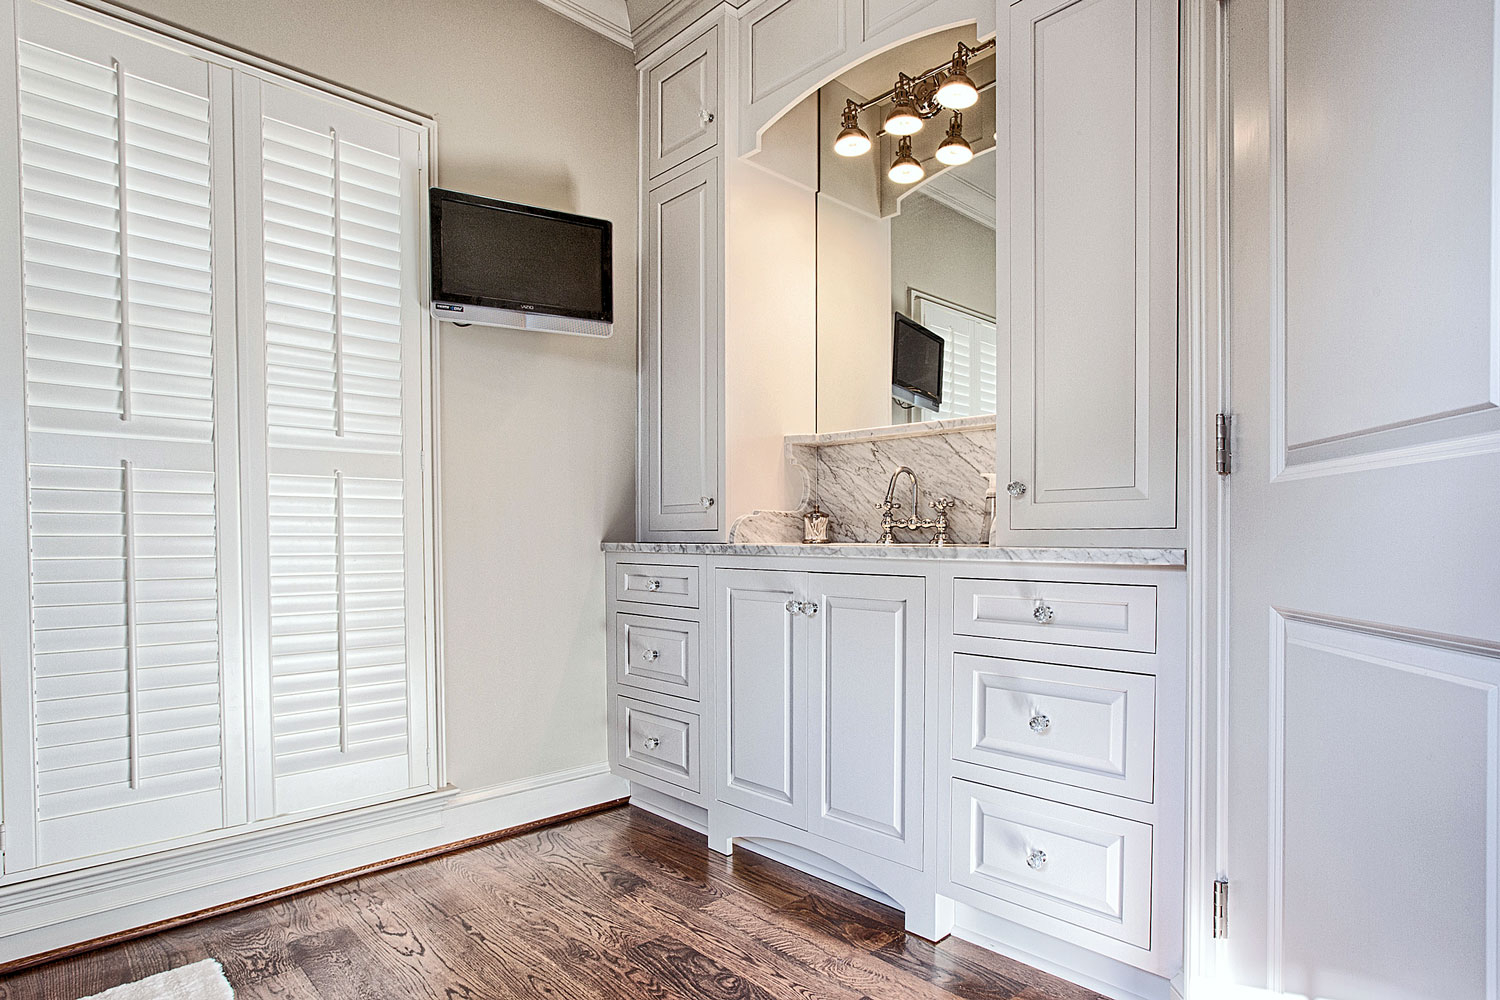 A Wall Mounted Television Located In A Traditional Bathroom Design